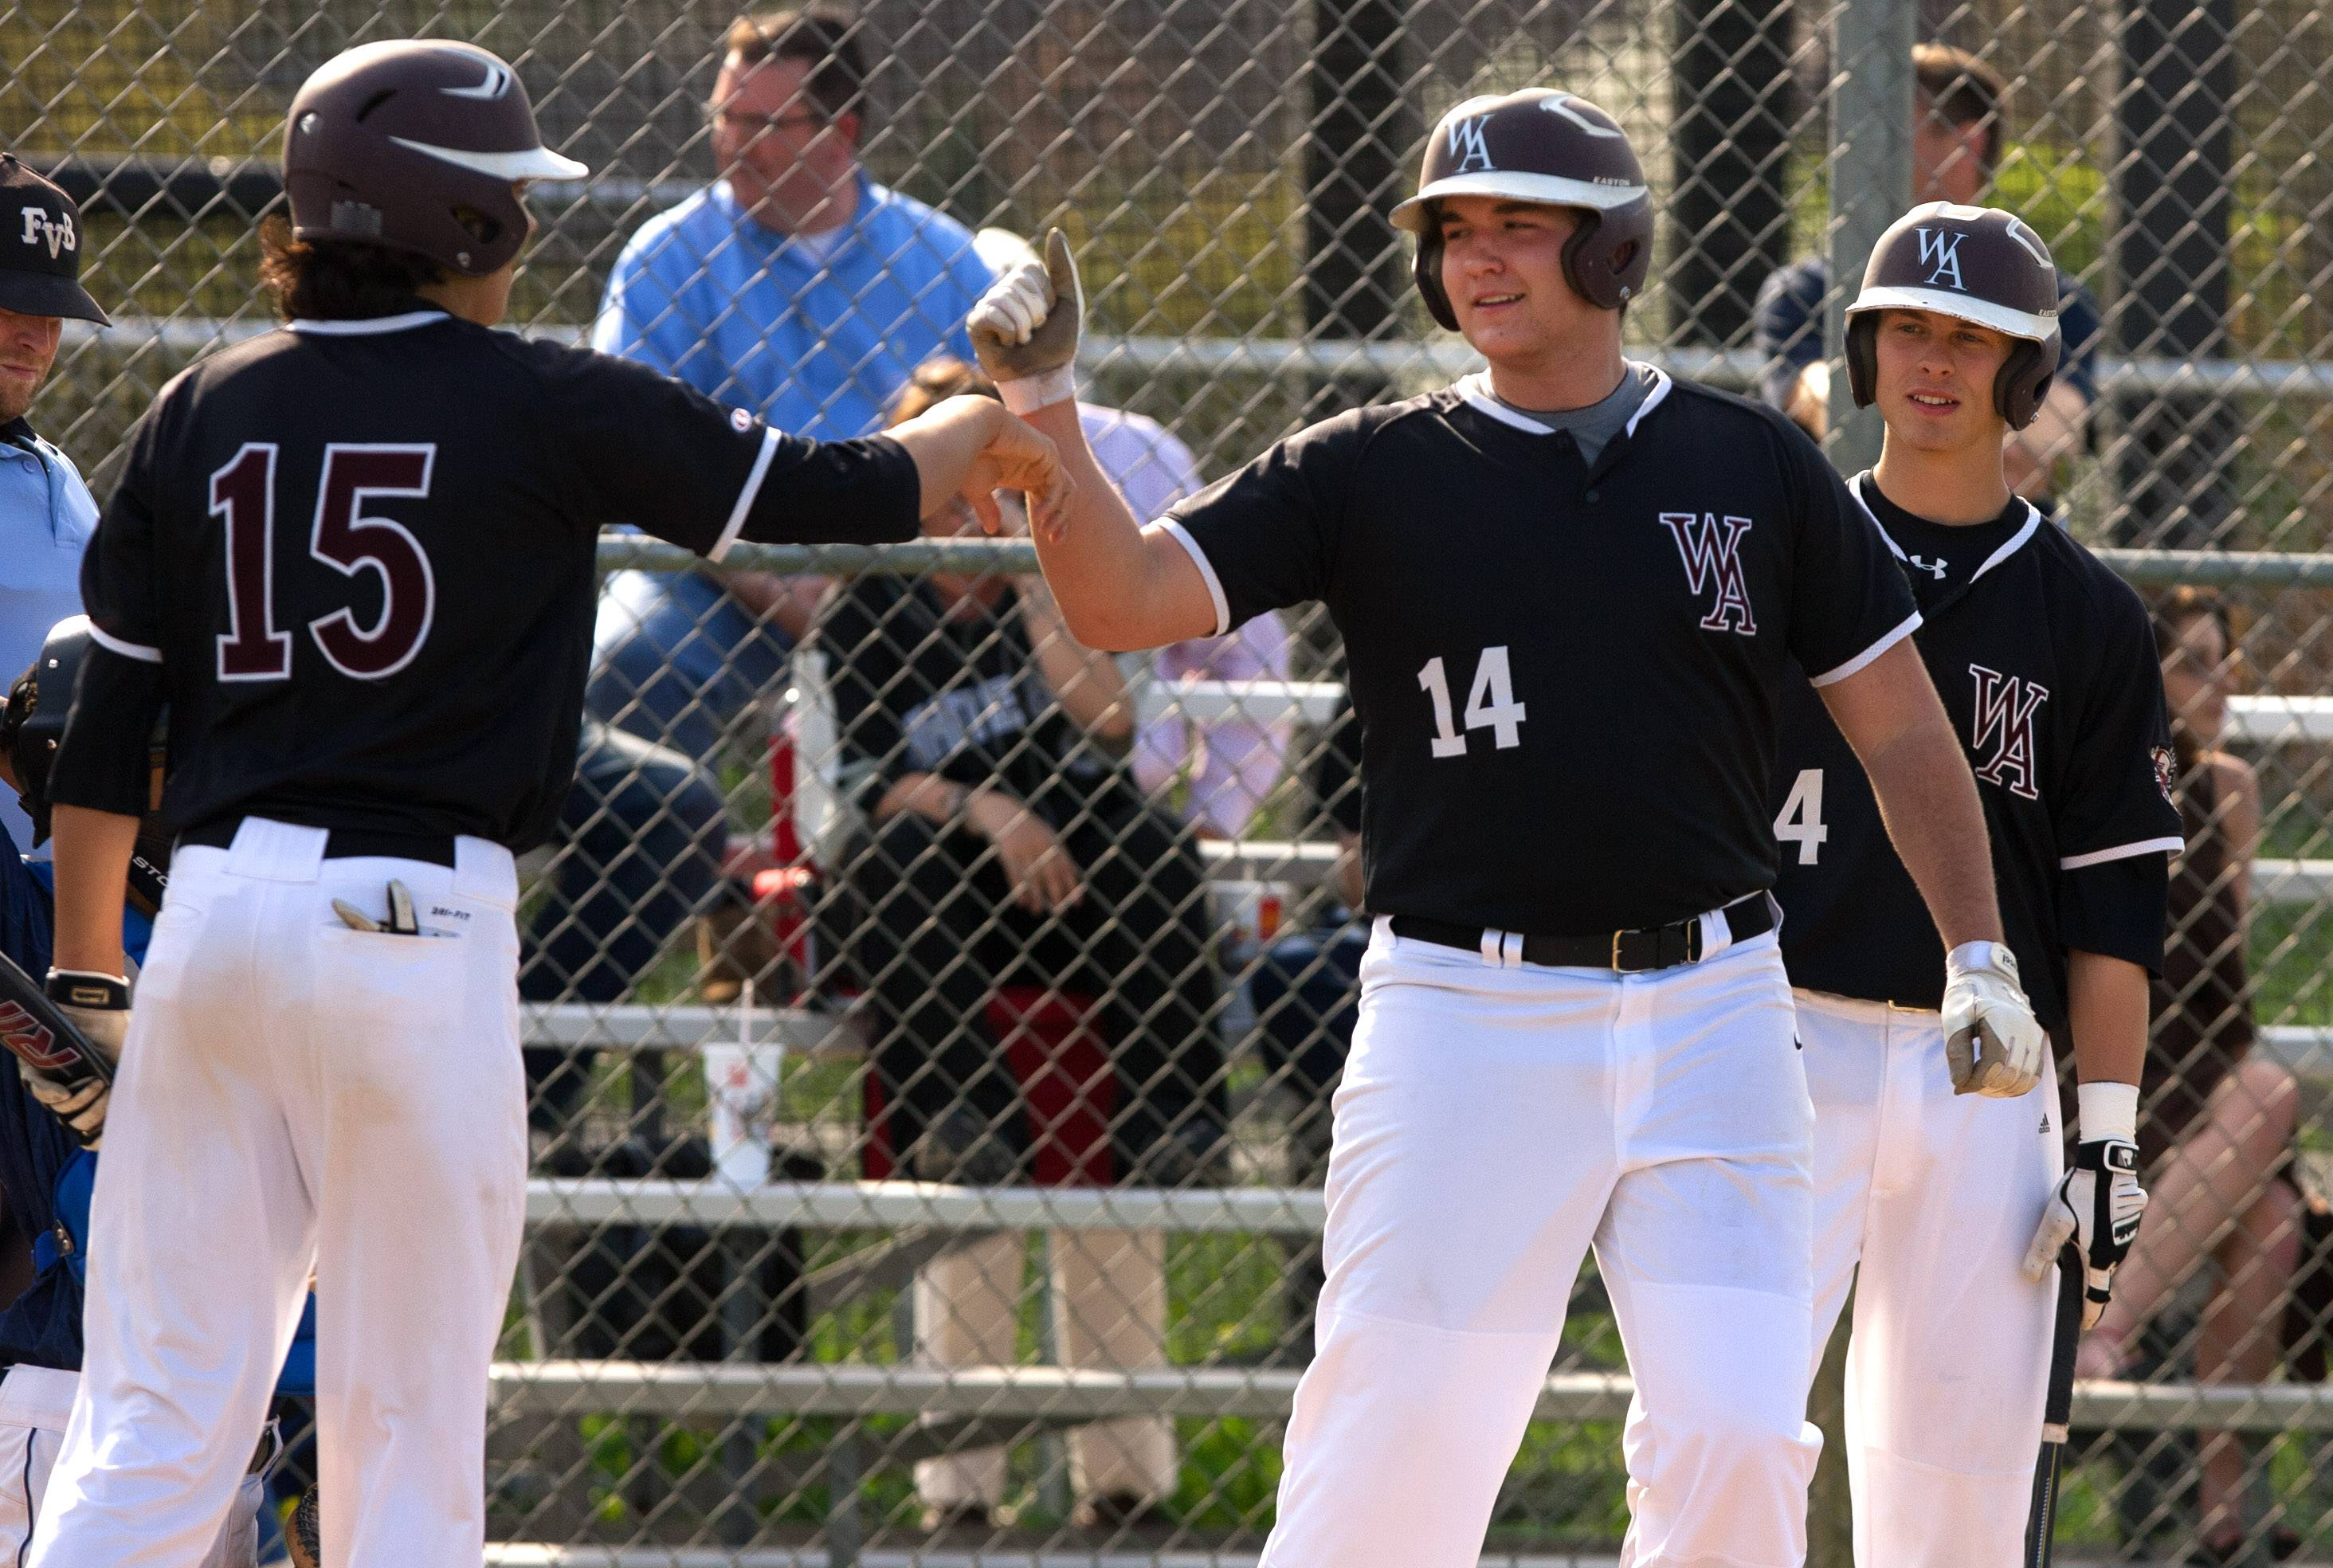 Wheaton Academy's Ryan Beck, center, crosses home plate after hitting his first of two three-run homers against IC Catholic Prep during baseball action in West Chicago. Adam Ghosh, left, and Brett Albaugh, right, give Beck high fives.